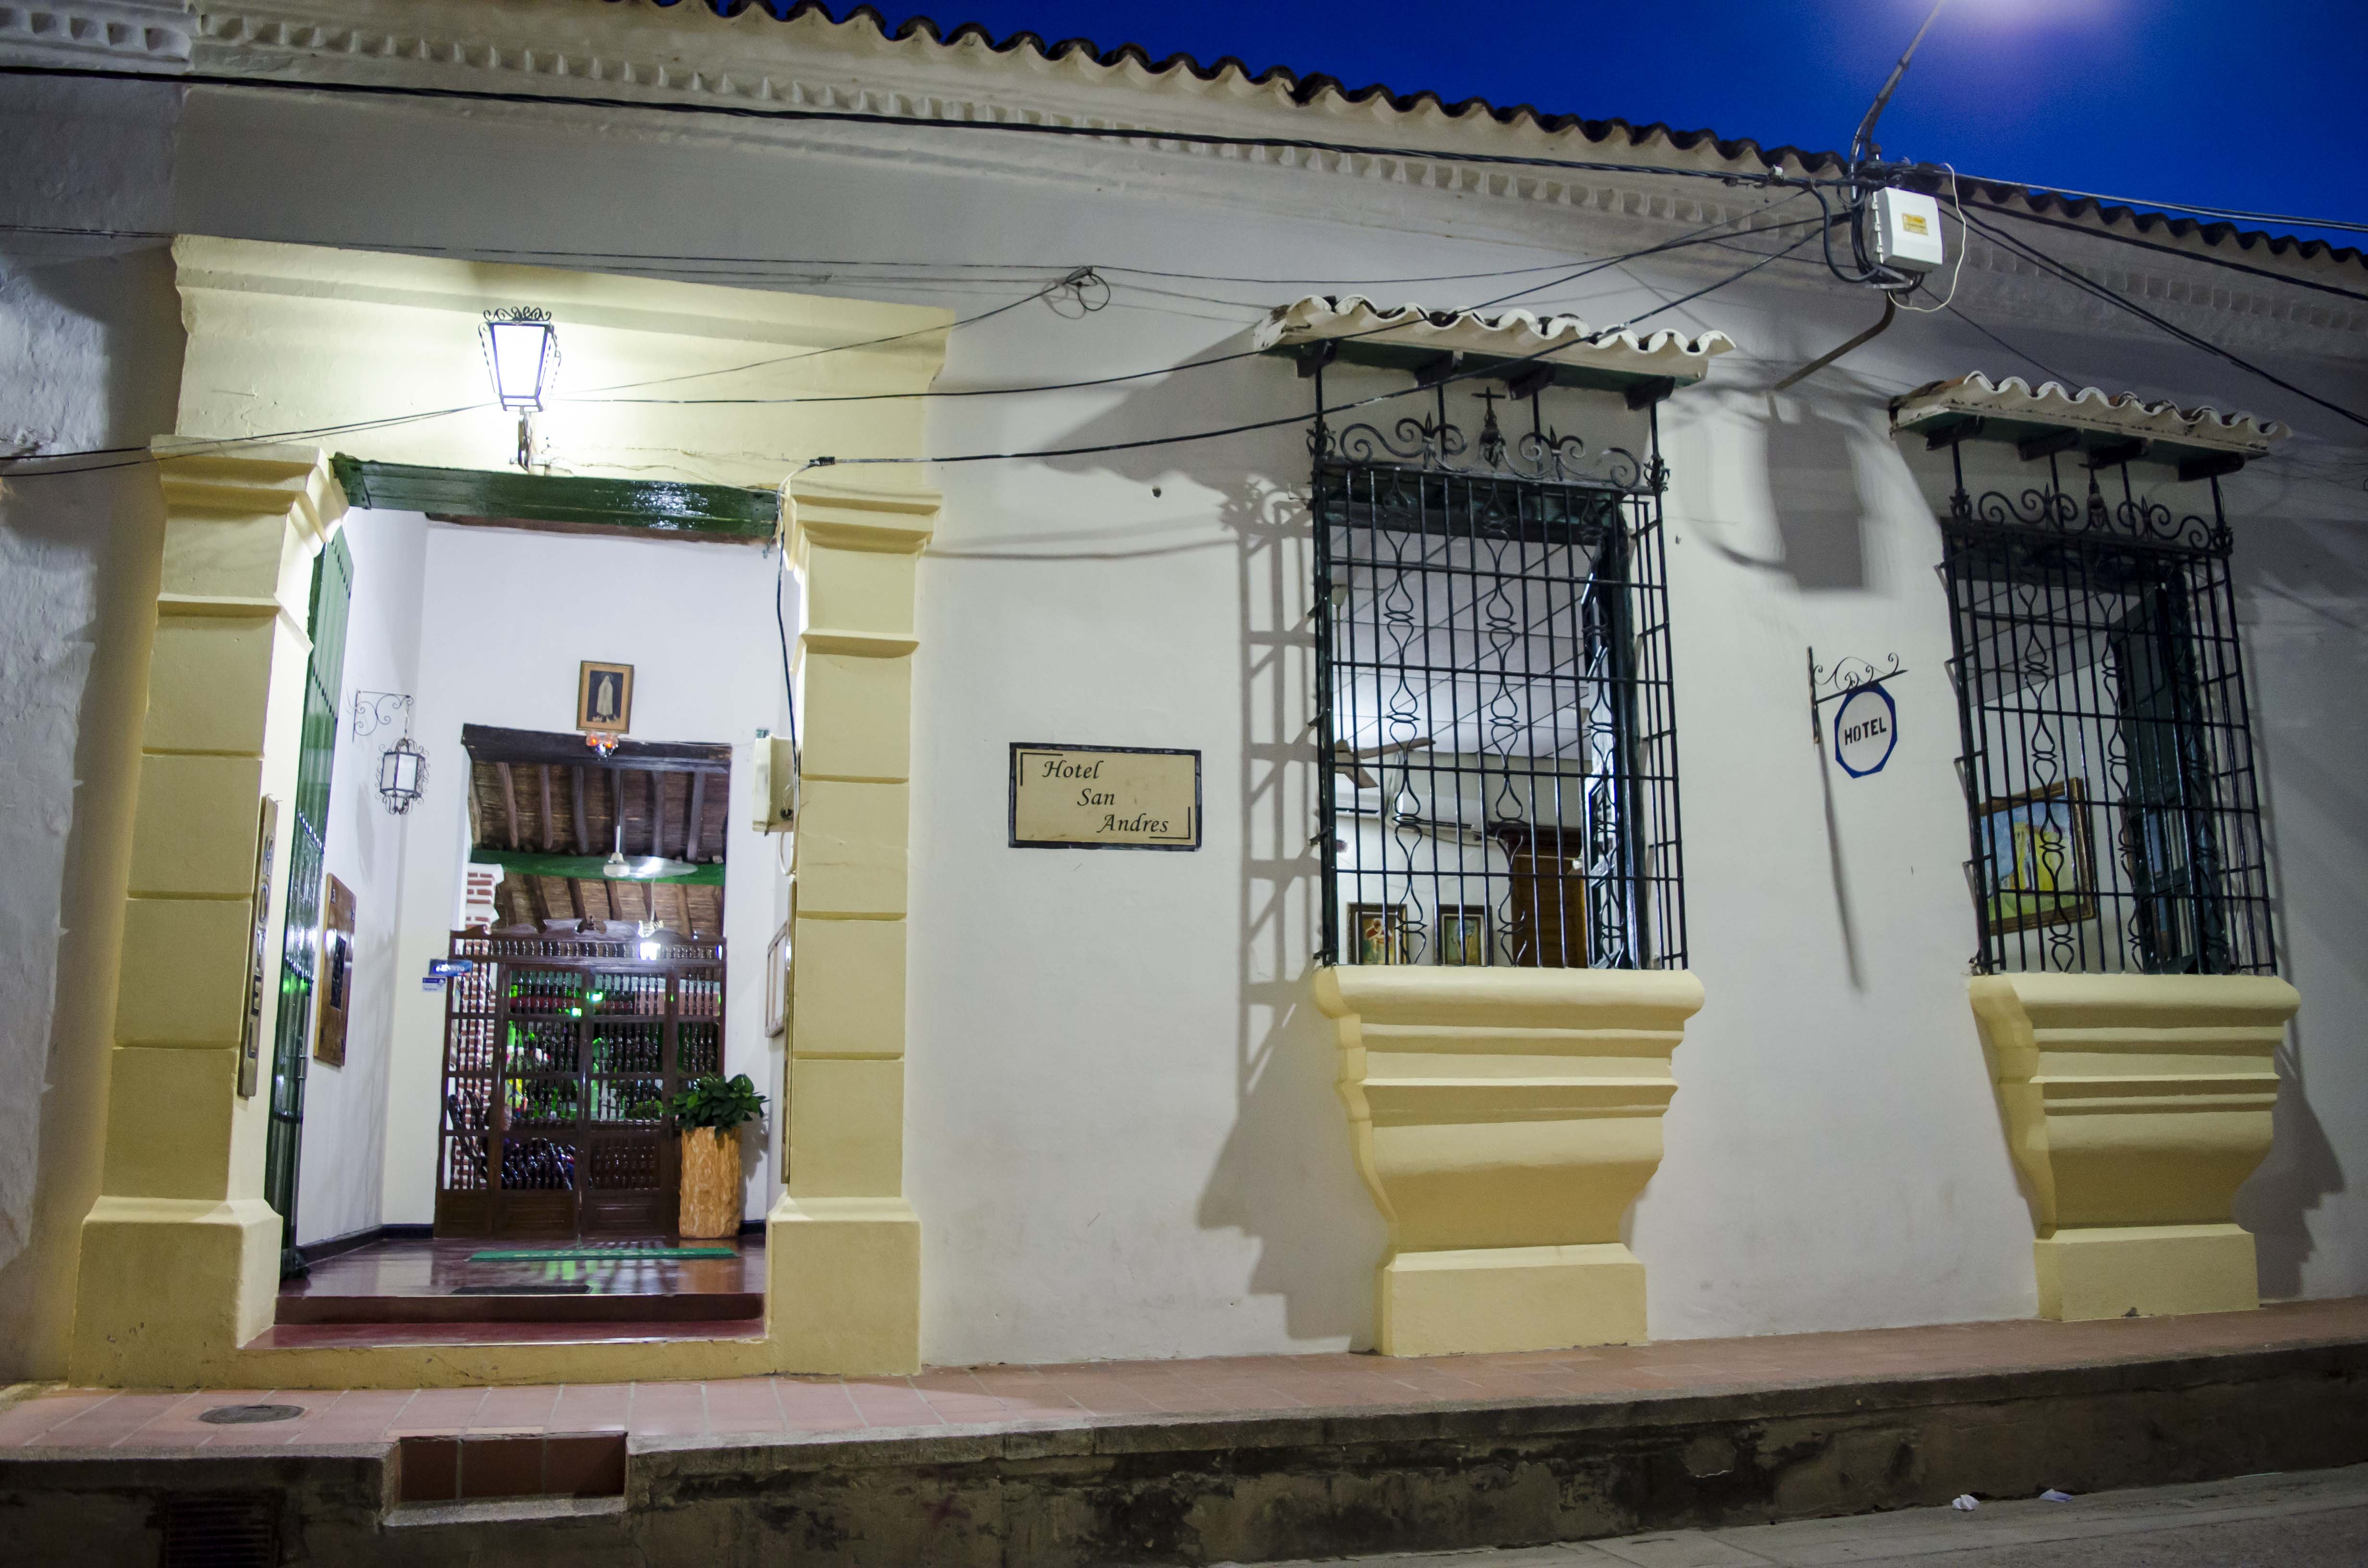 Hotel San Andres Mompox